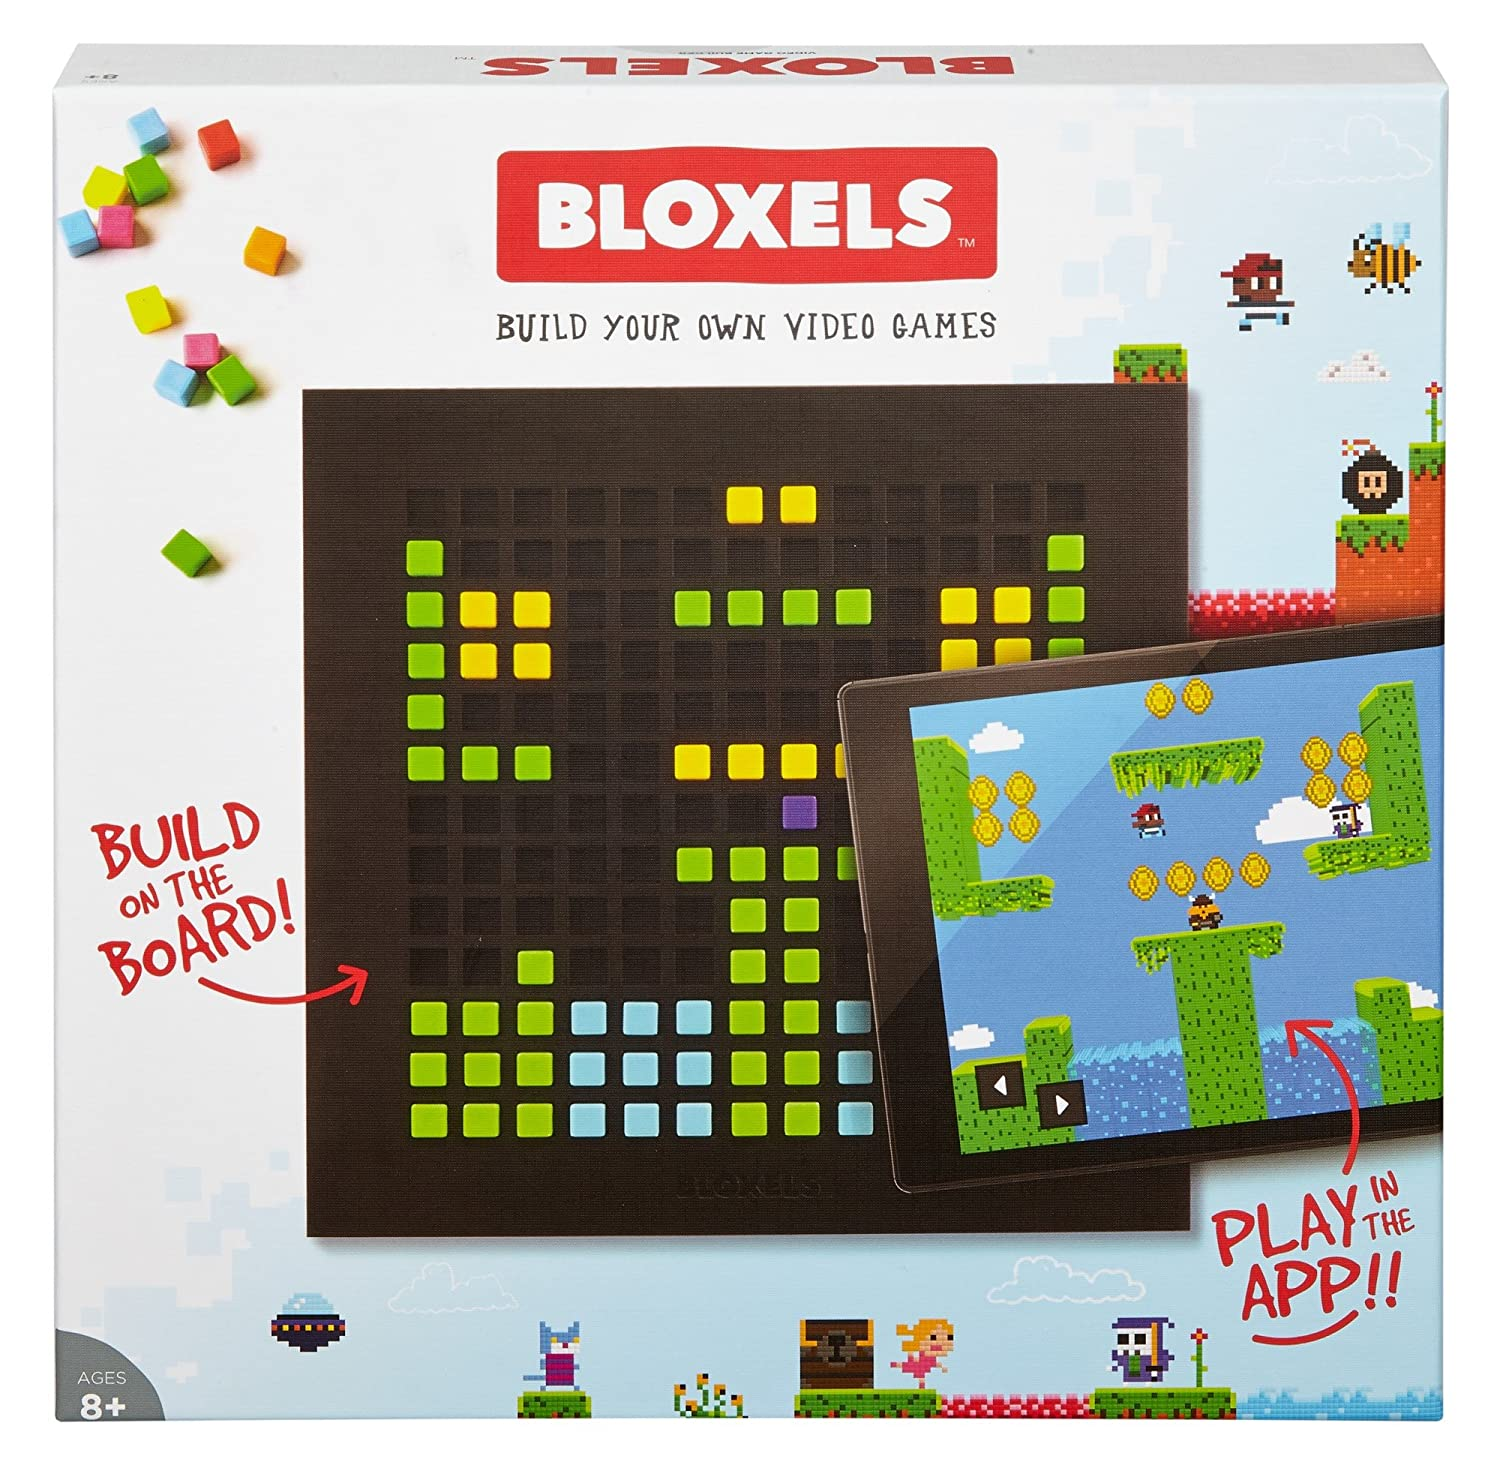 Amazon Bloxels Build Your Own Video Game Toys & Games